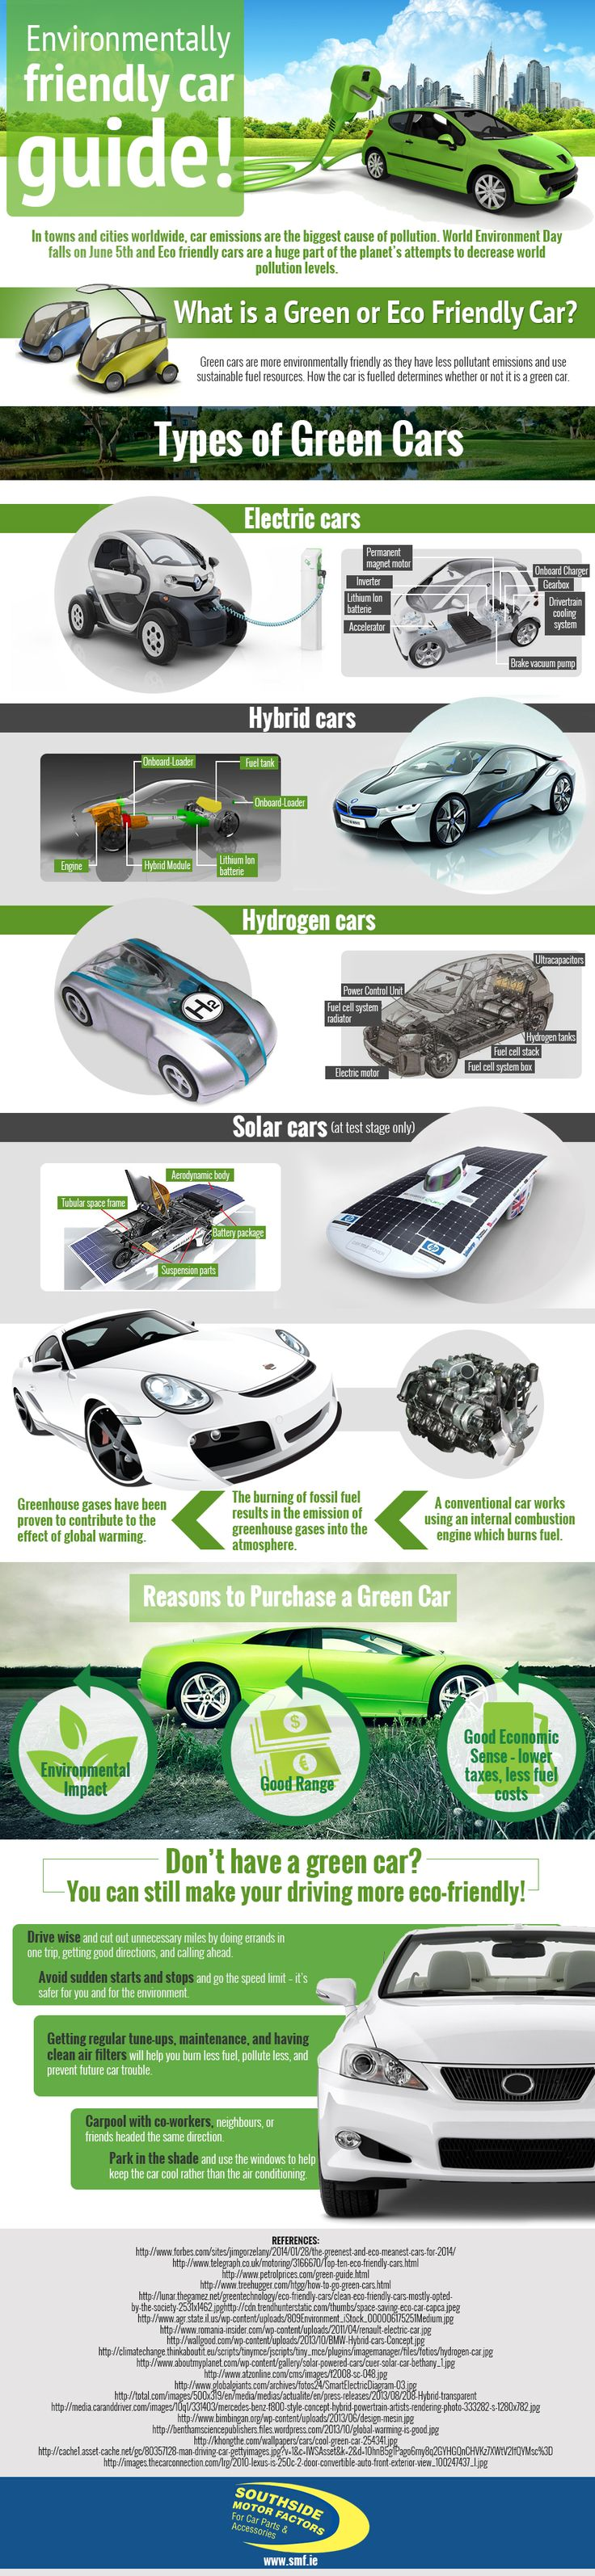 Infographic: Environmentally Friendly Car Guide